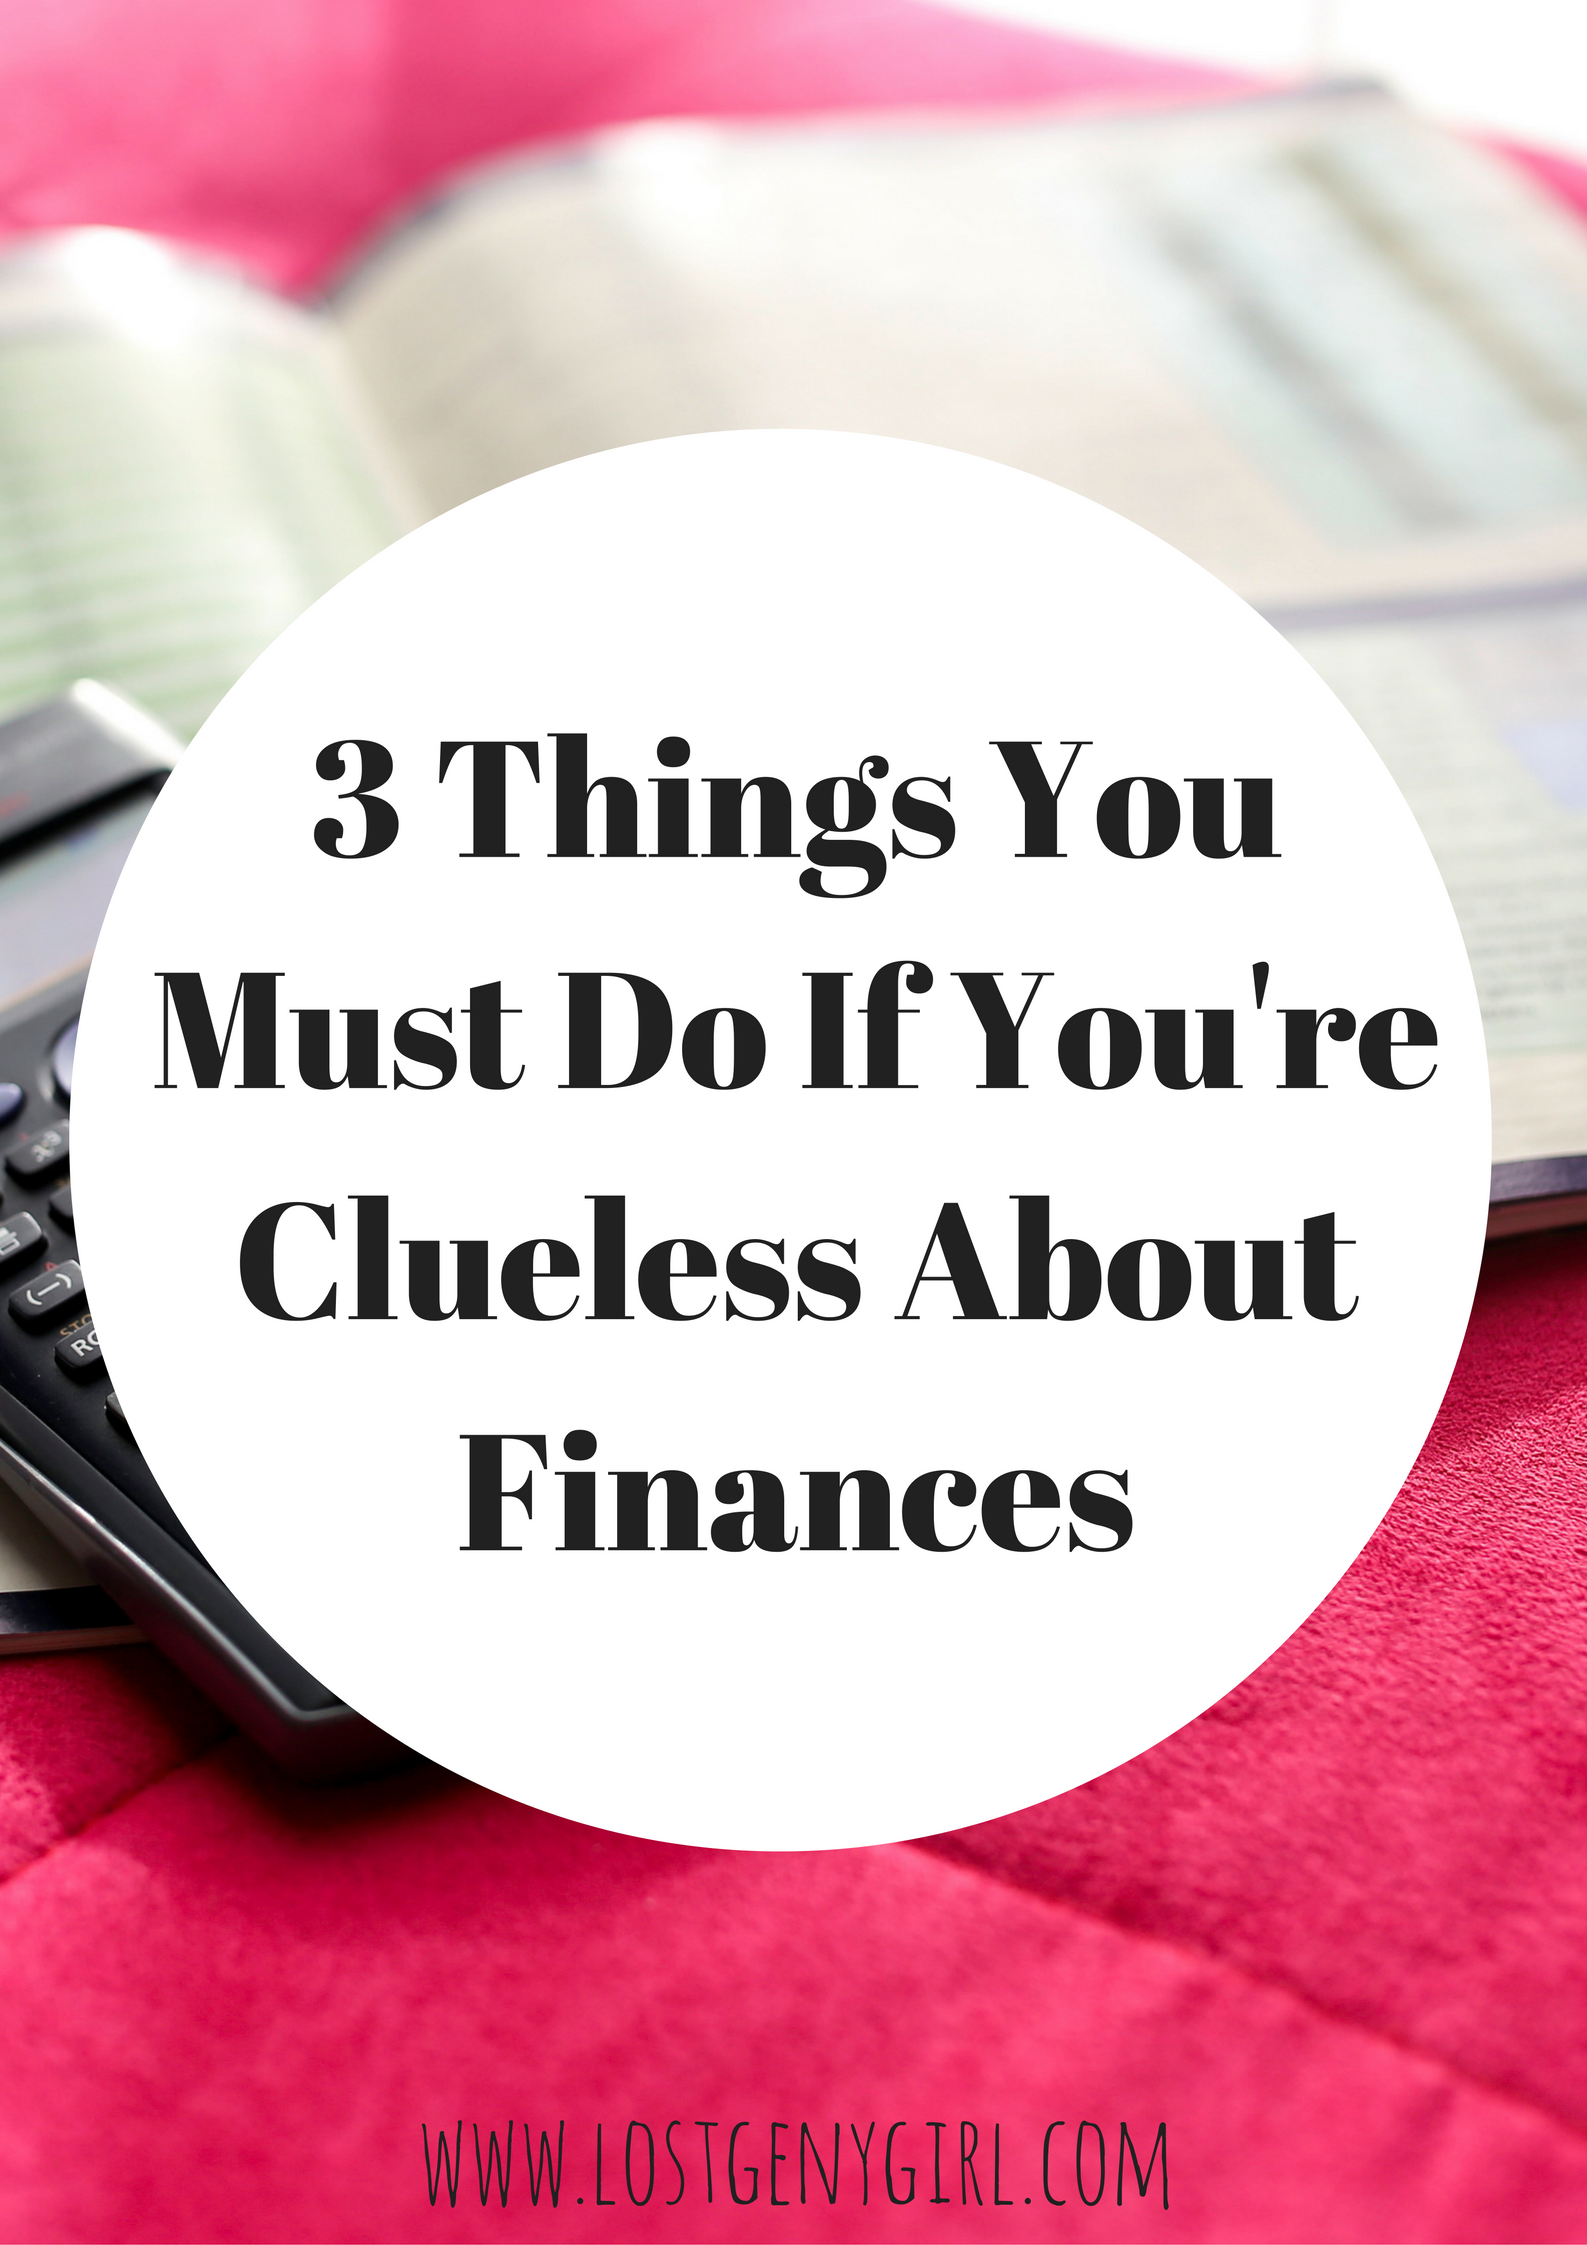 3 Things You Must Do If You're Clueless About Finances